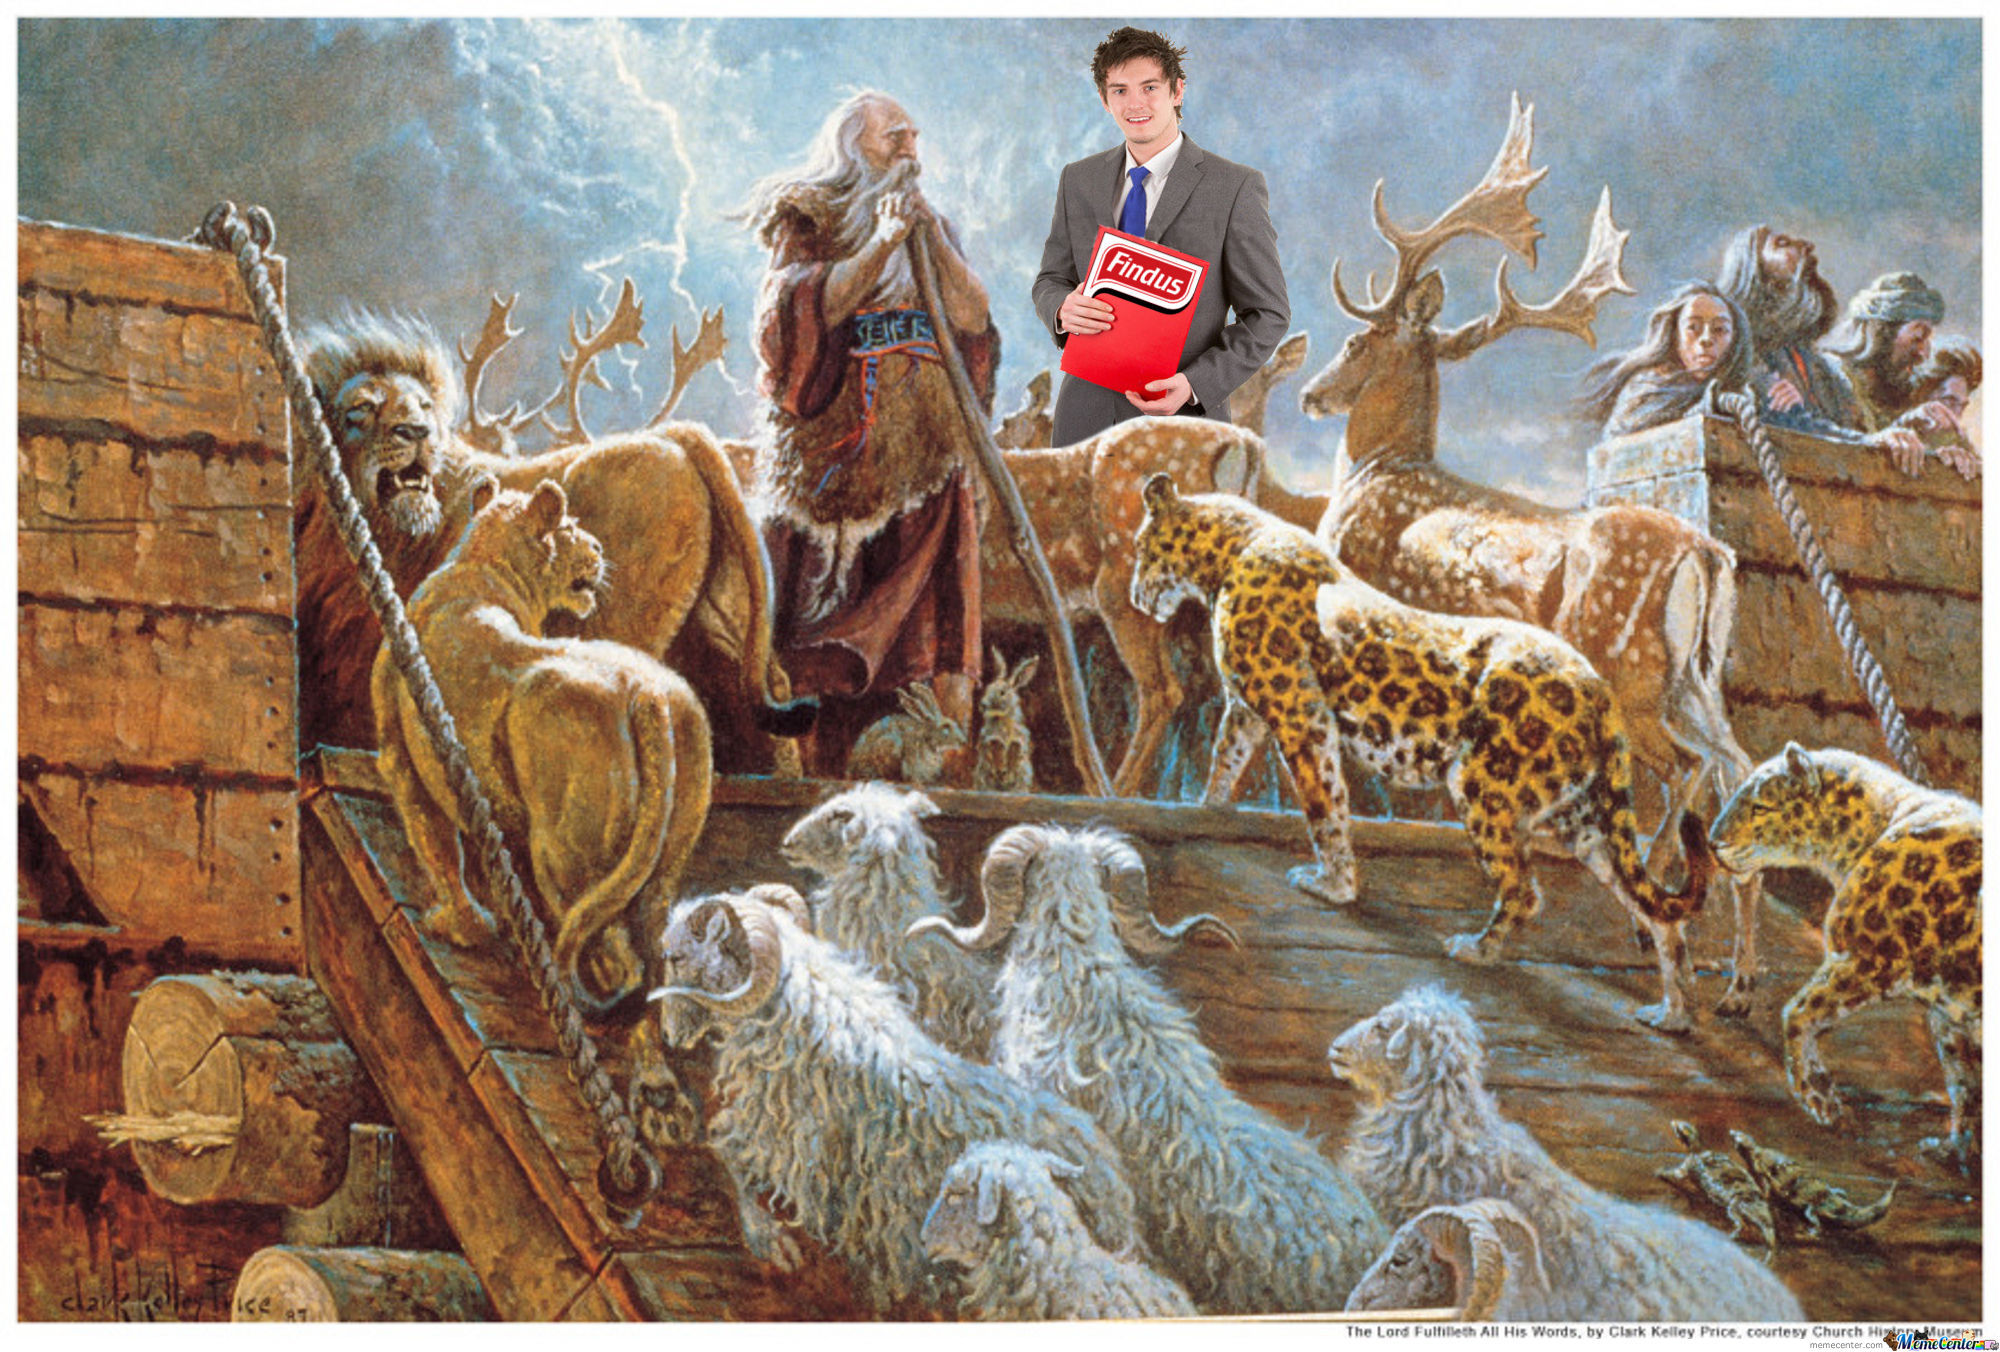 Noah's Ark Meat Scandal